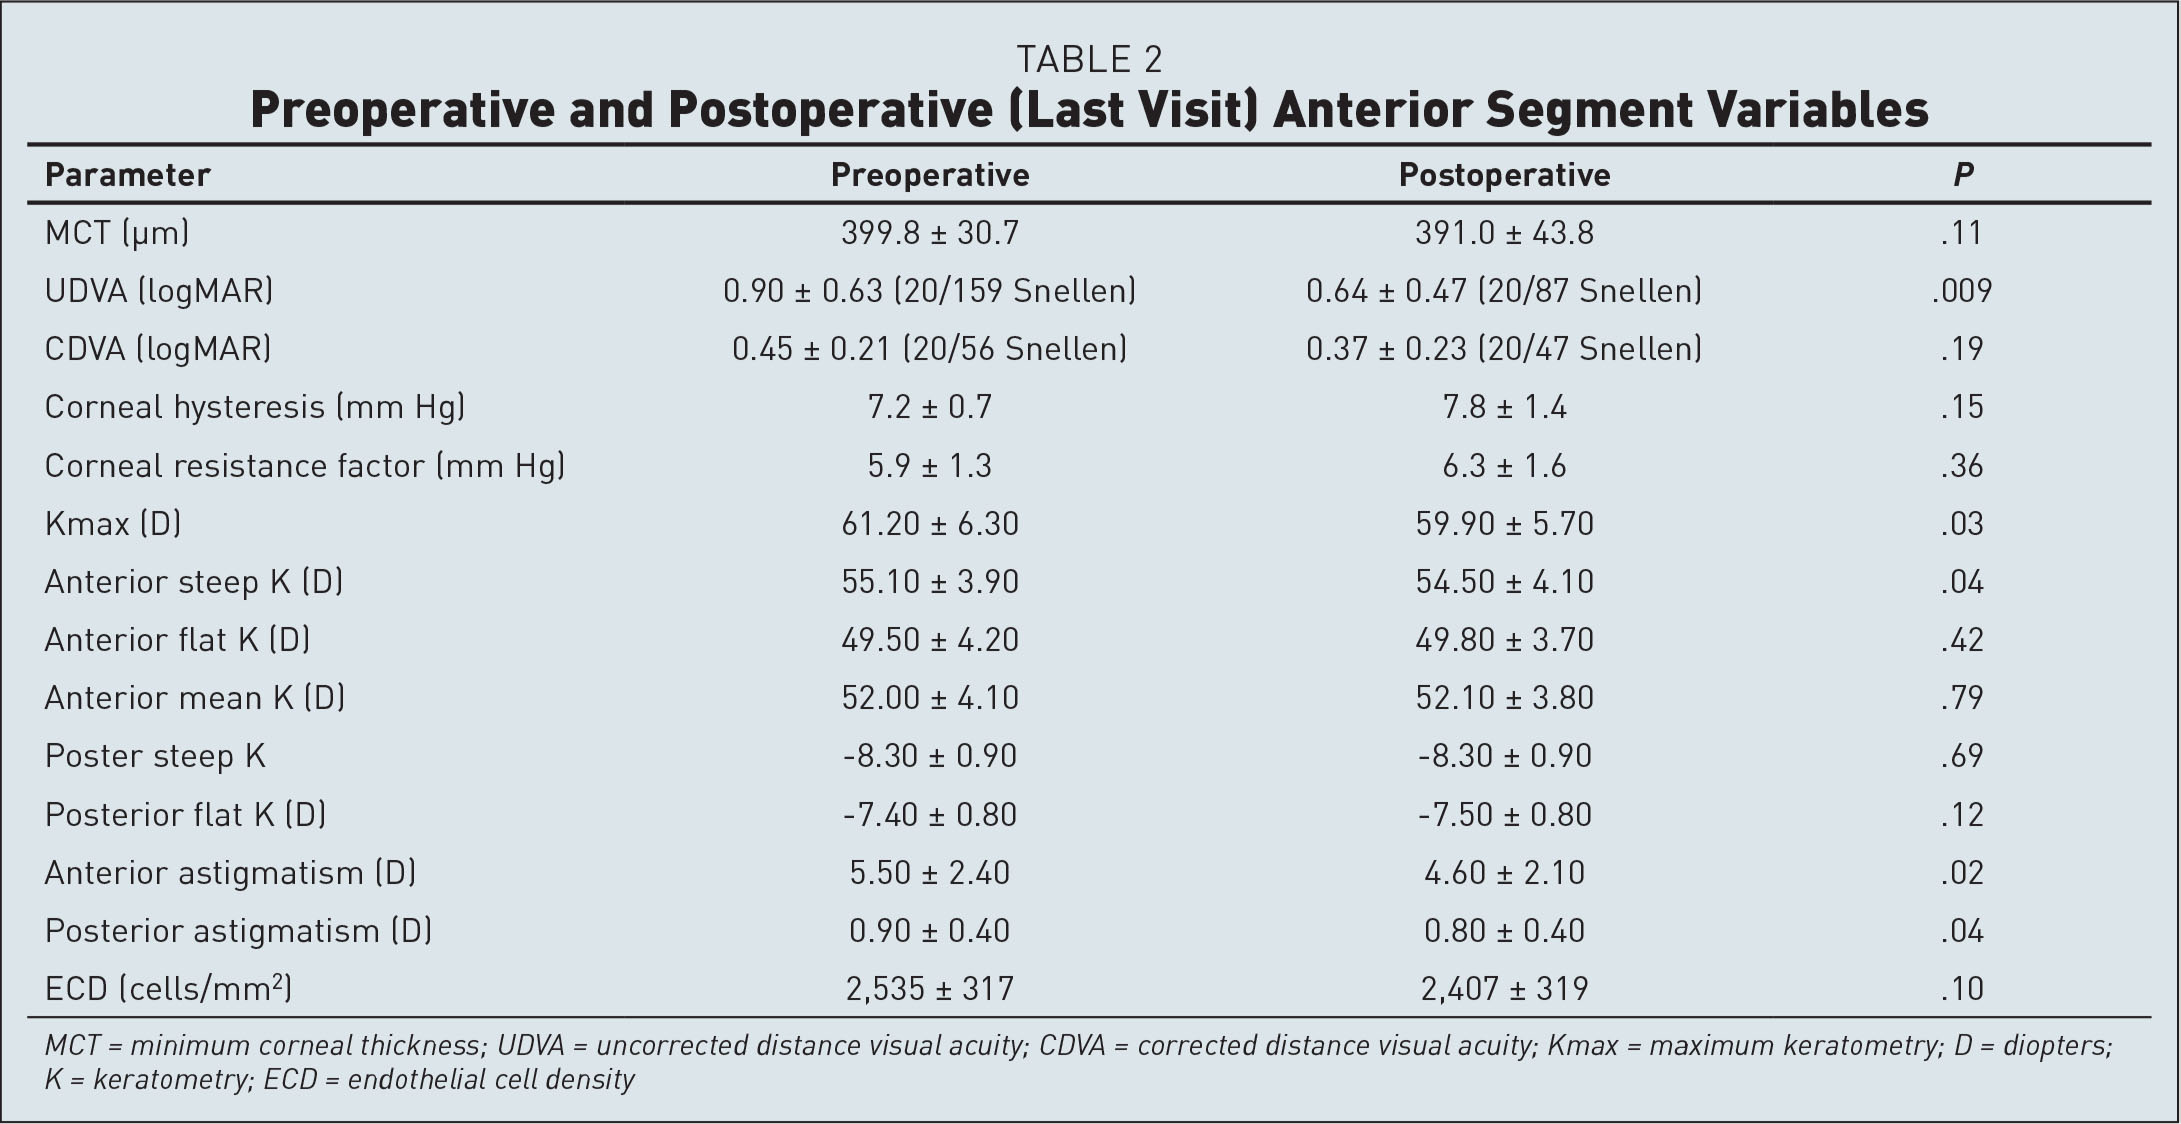 Preoperative and Postoperative (Last Visit) Anterior Segment Variables